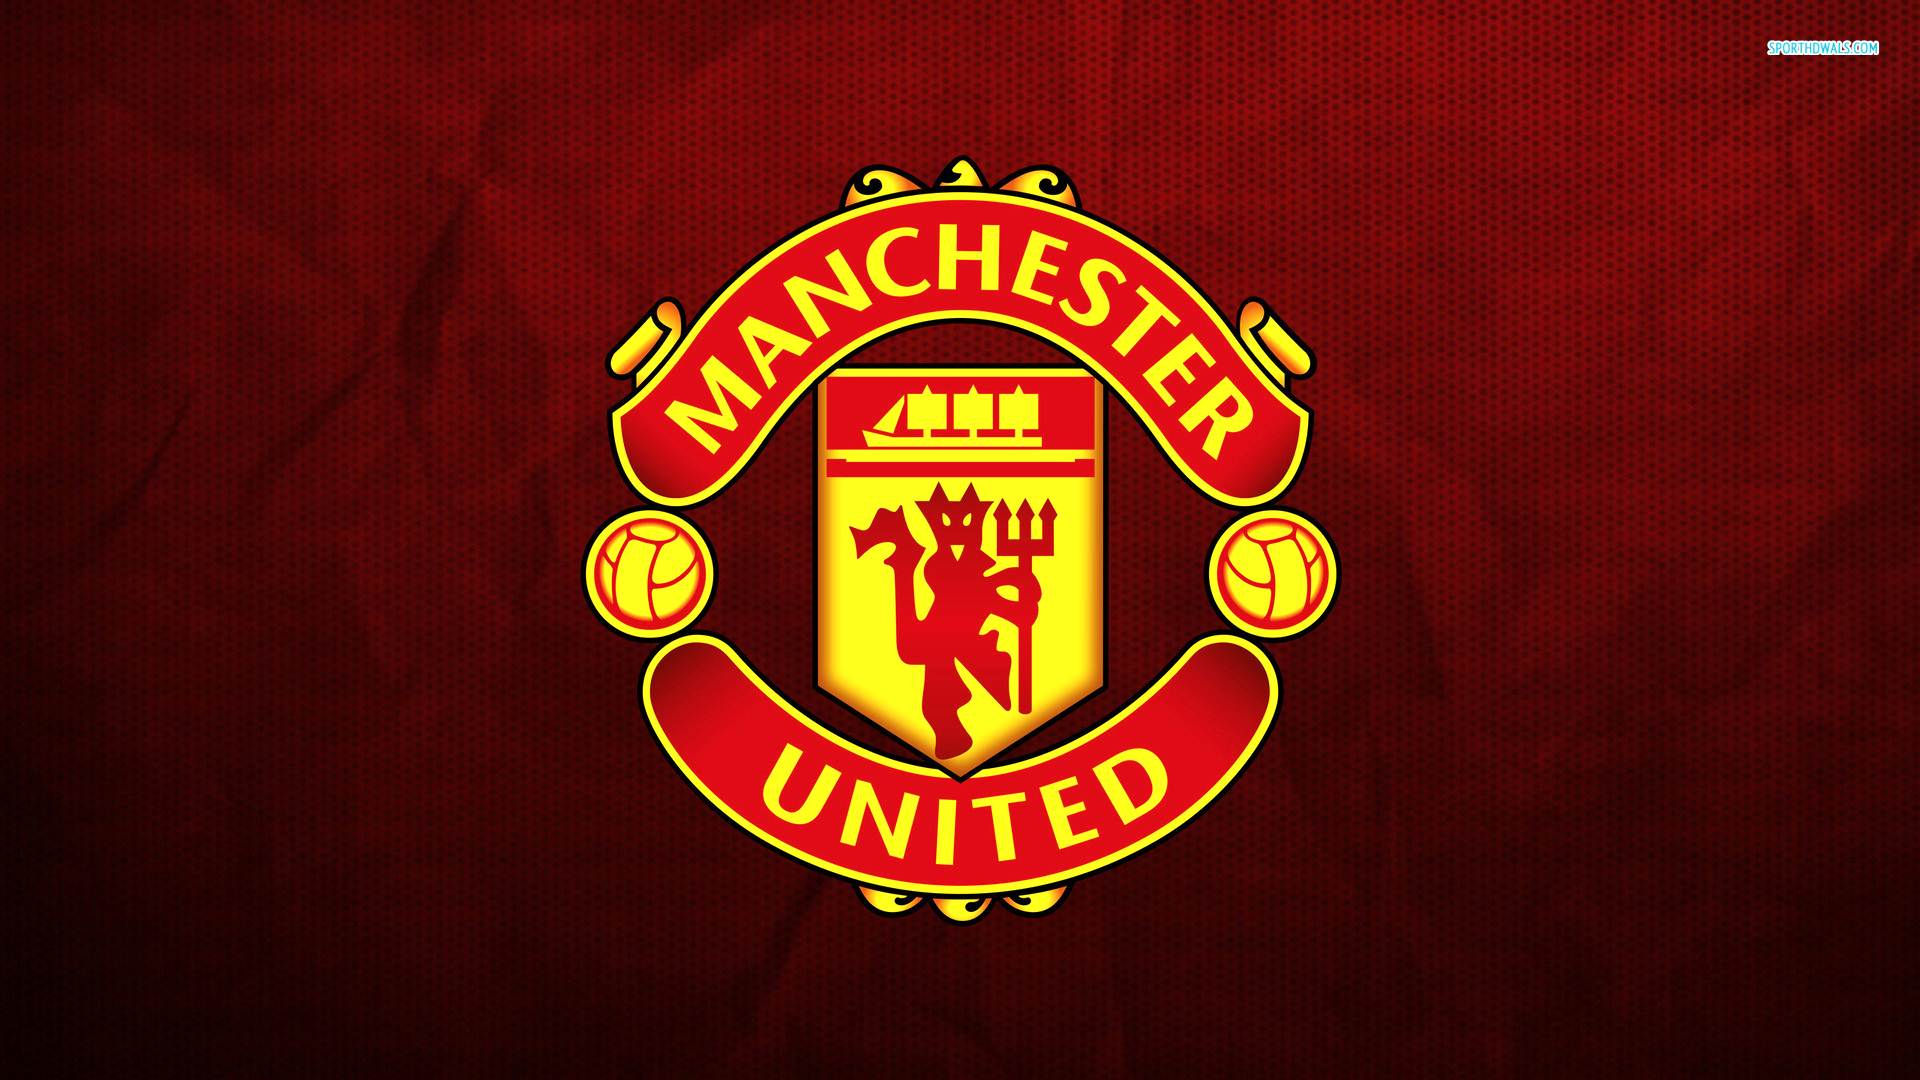 Man Utd Wallpaper HD   52DazheW Gallery 1920x1080